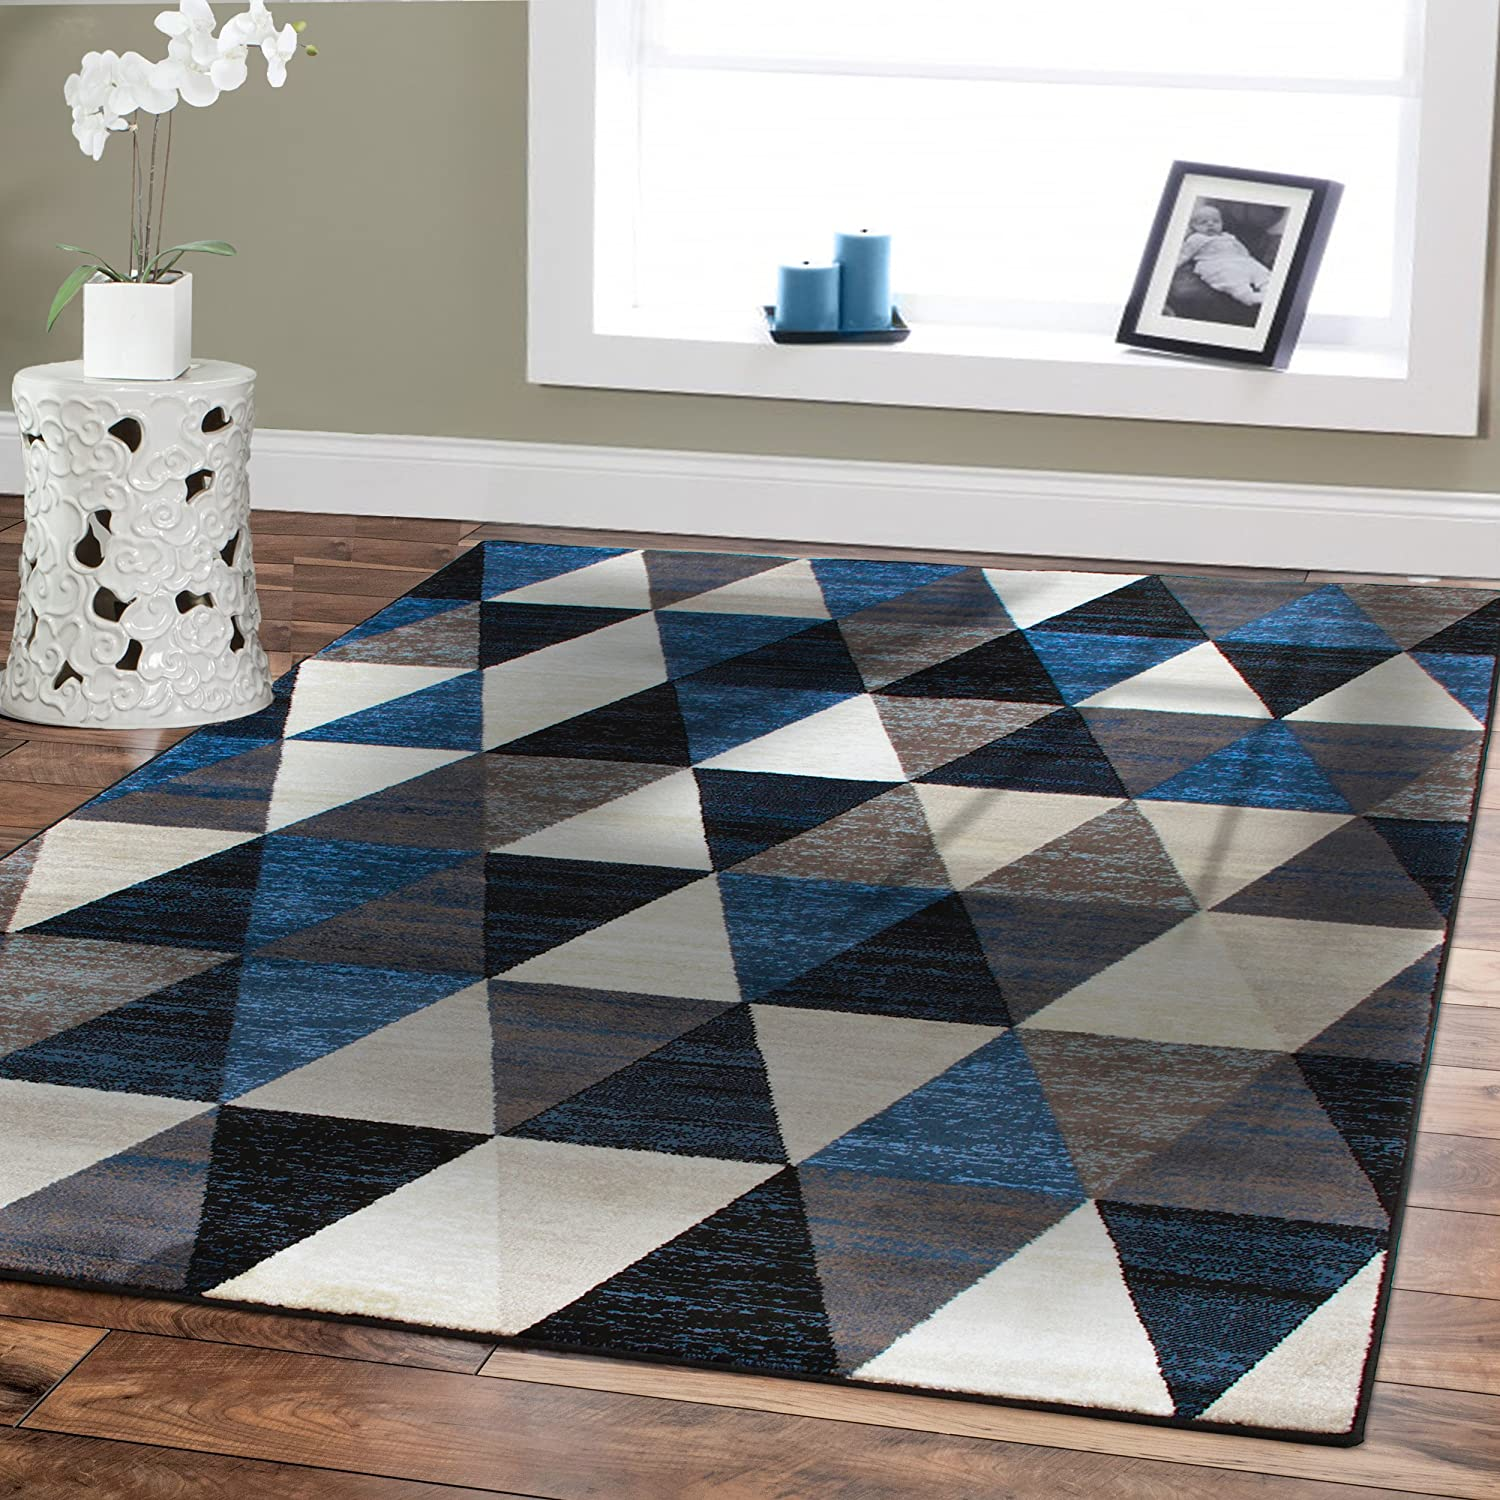 Amazon.com: Premium Large Rugs 8x11 Modern Rugs For Brown Sofa Blue ...